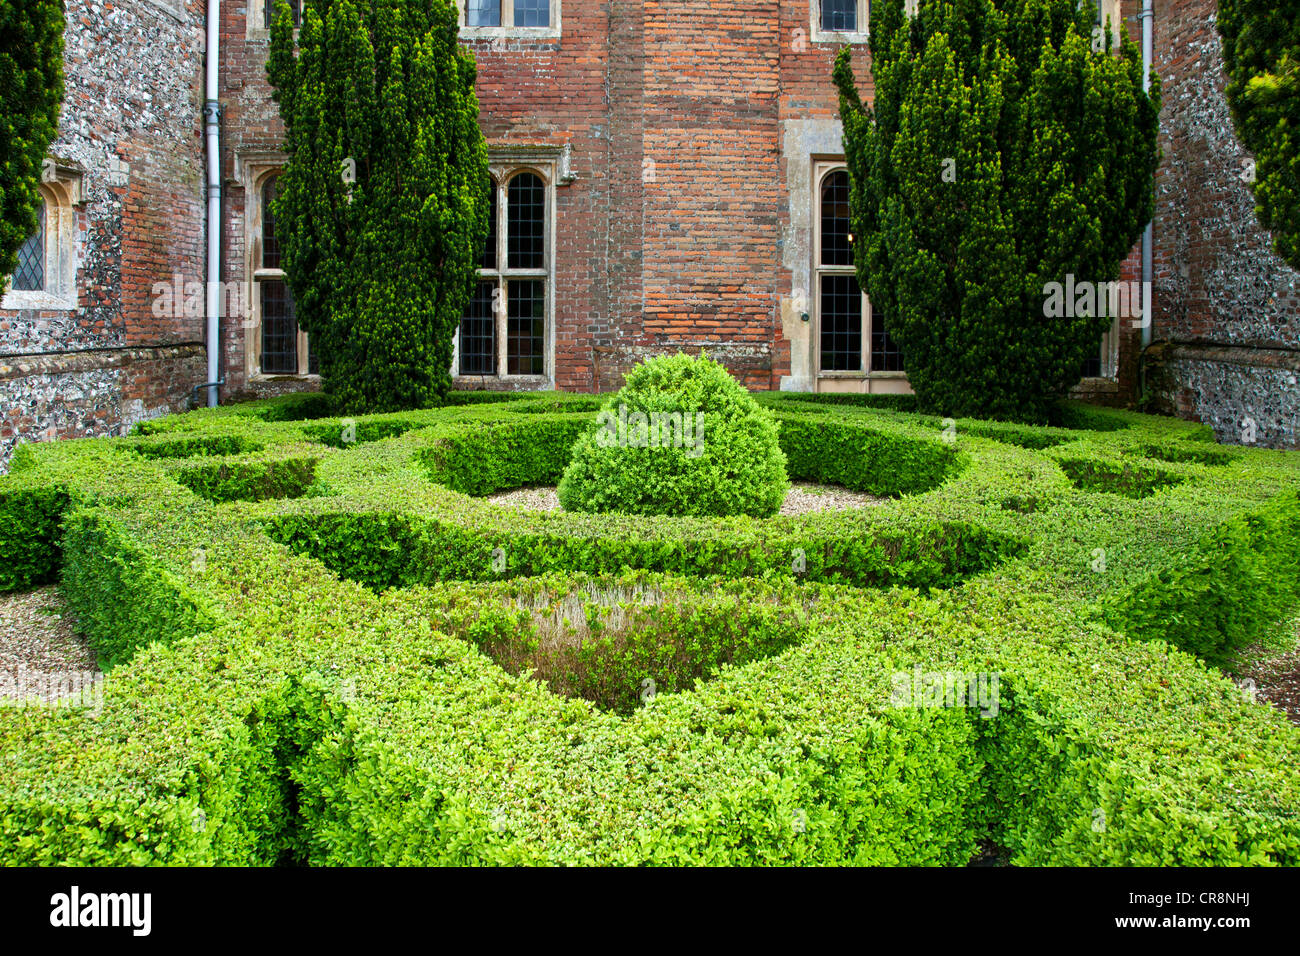 A knot garden of low box hedging the English country garden of Littlecote Manor in Berkshire, England, UK - Stock Image